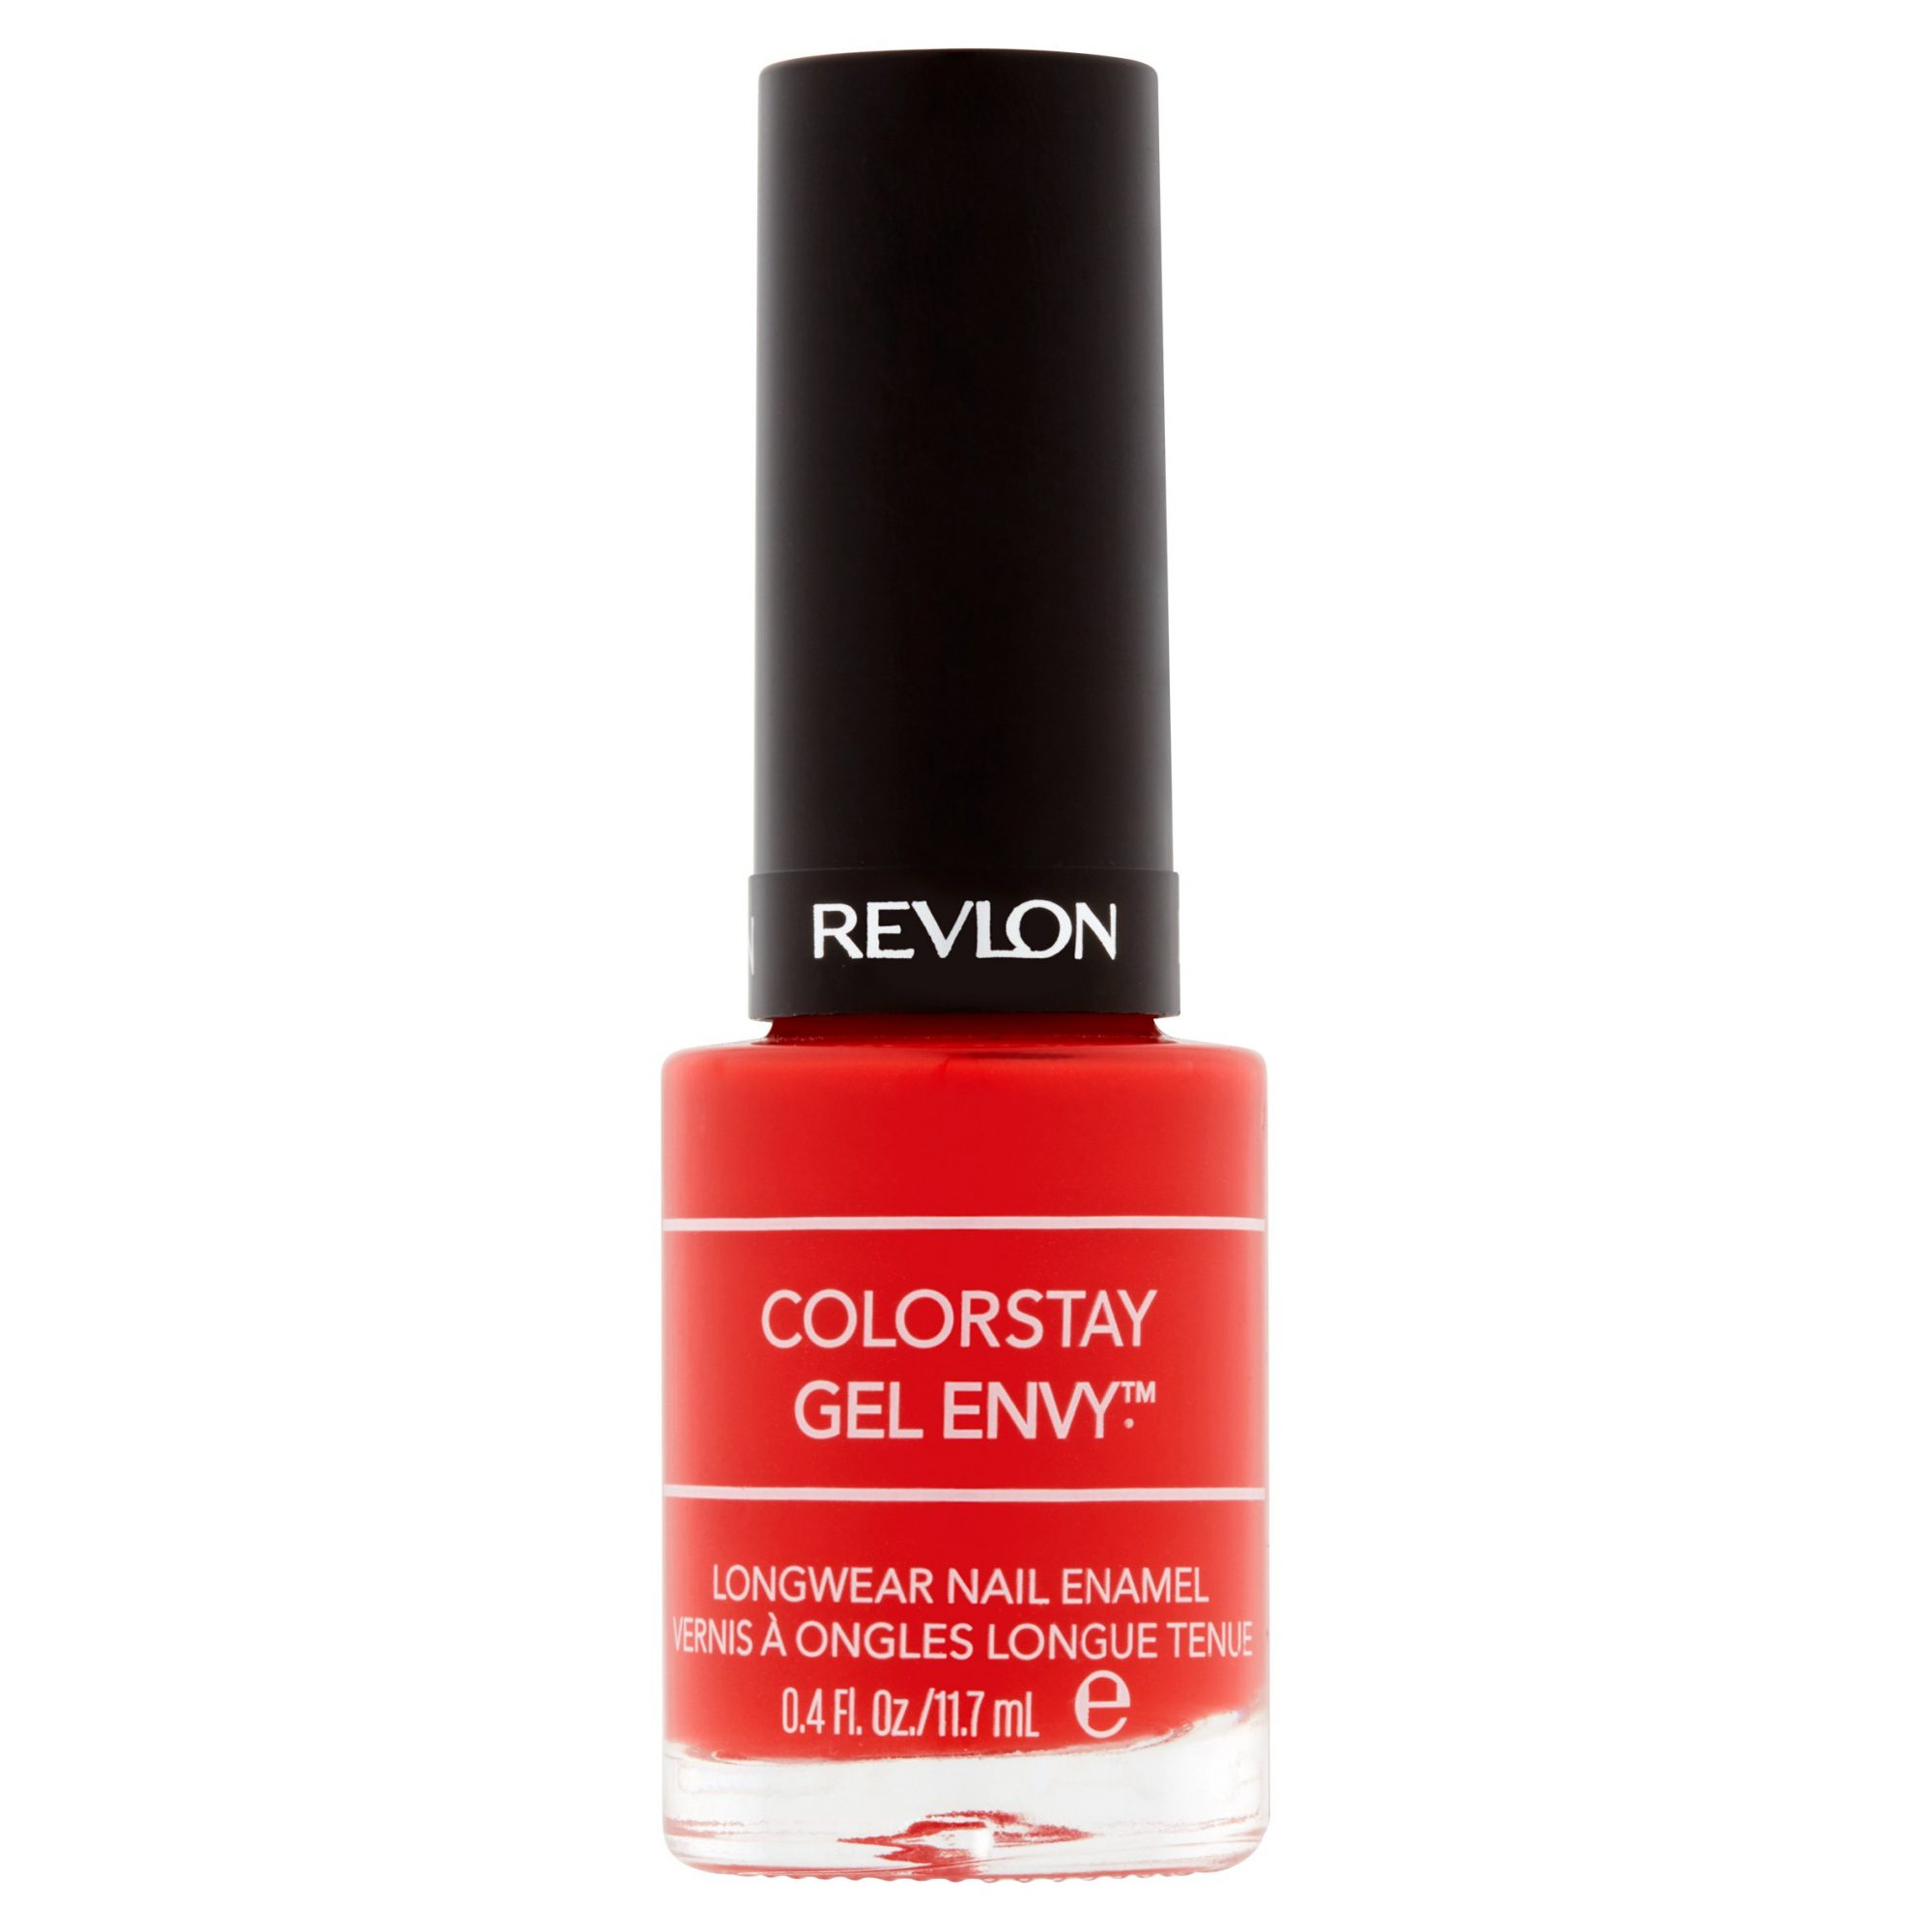 Nail Polish Colors For Younger Looking Hands: Nail Polish Colors That Will Make Your Hands Look Younger